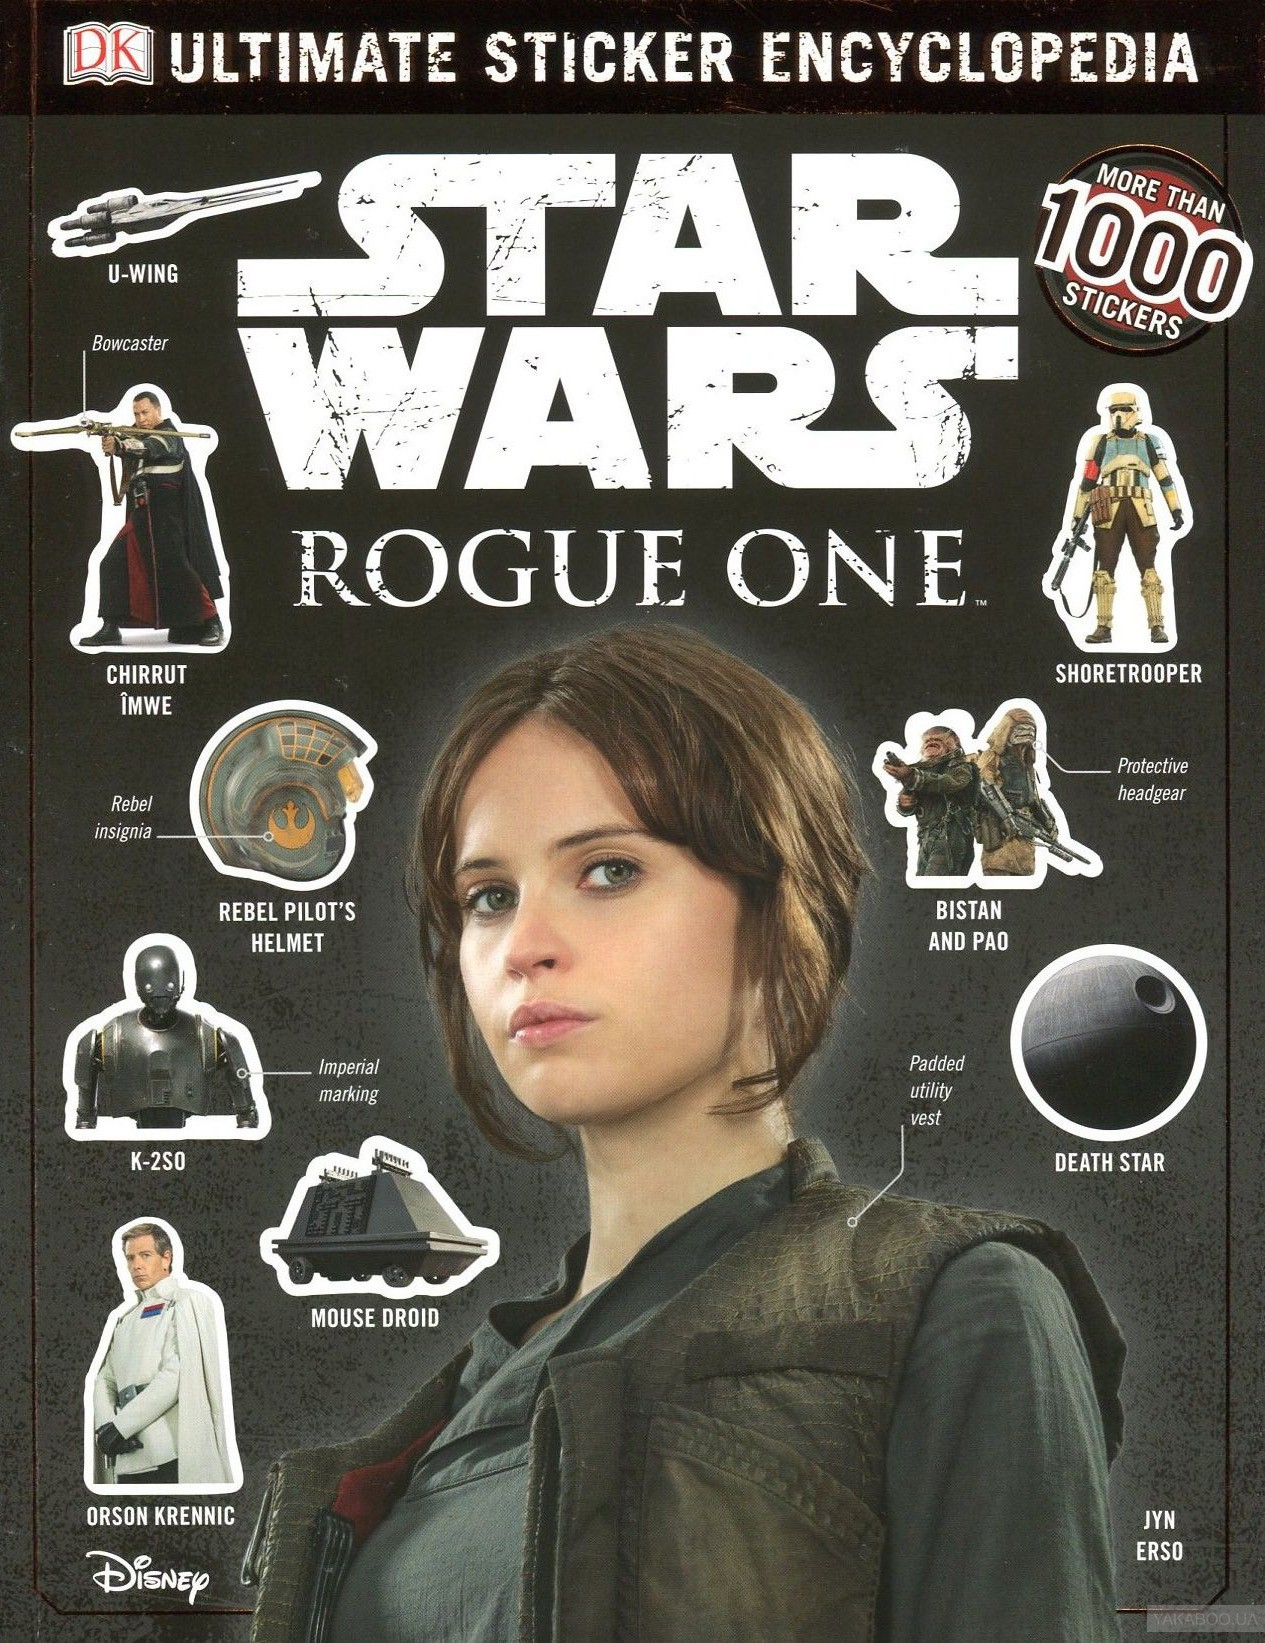 Star wars rogue one ultimate sticker encyclopedia (+наклейки)